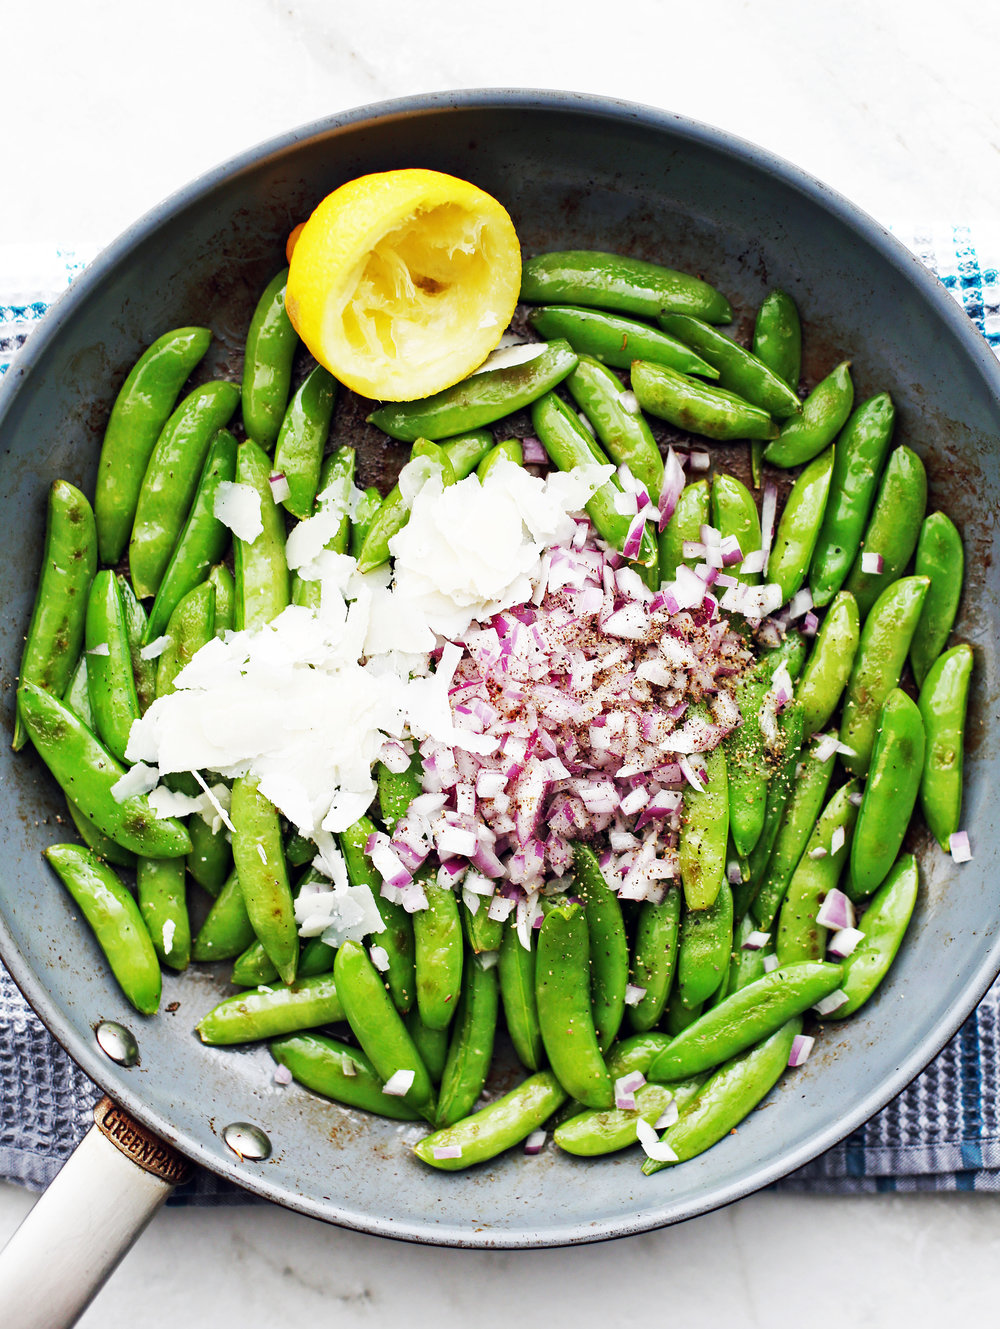 Sauteed sugar snap peas topped with parmesan, red onions, and black pepper in a large frying pan.